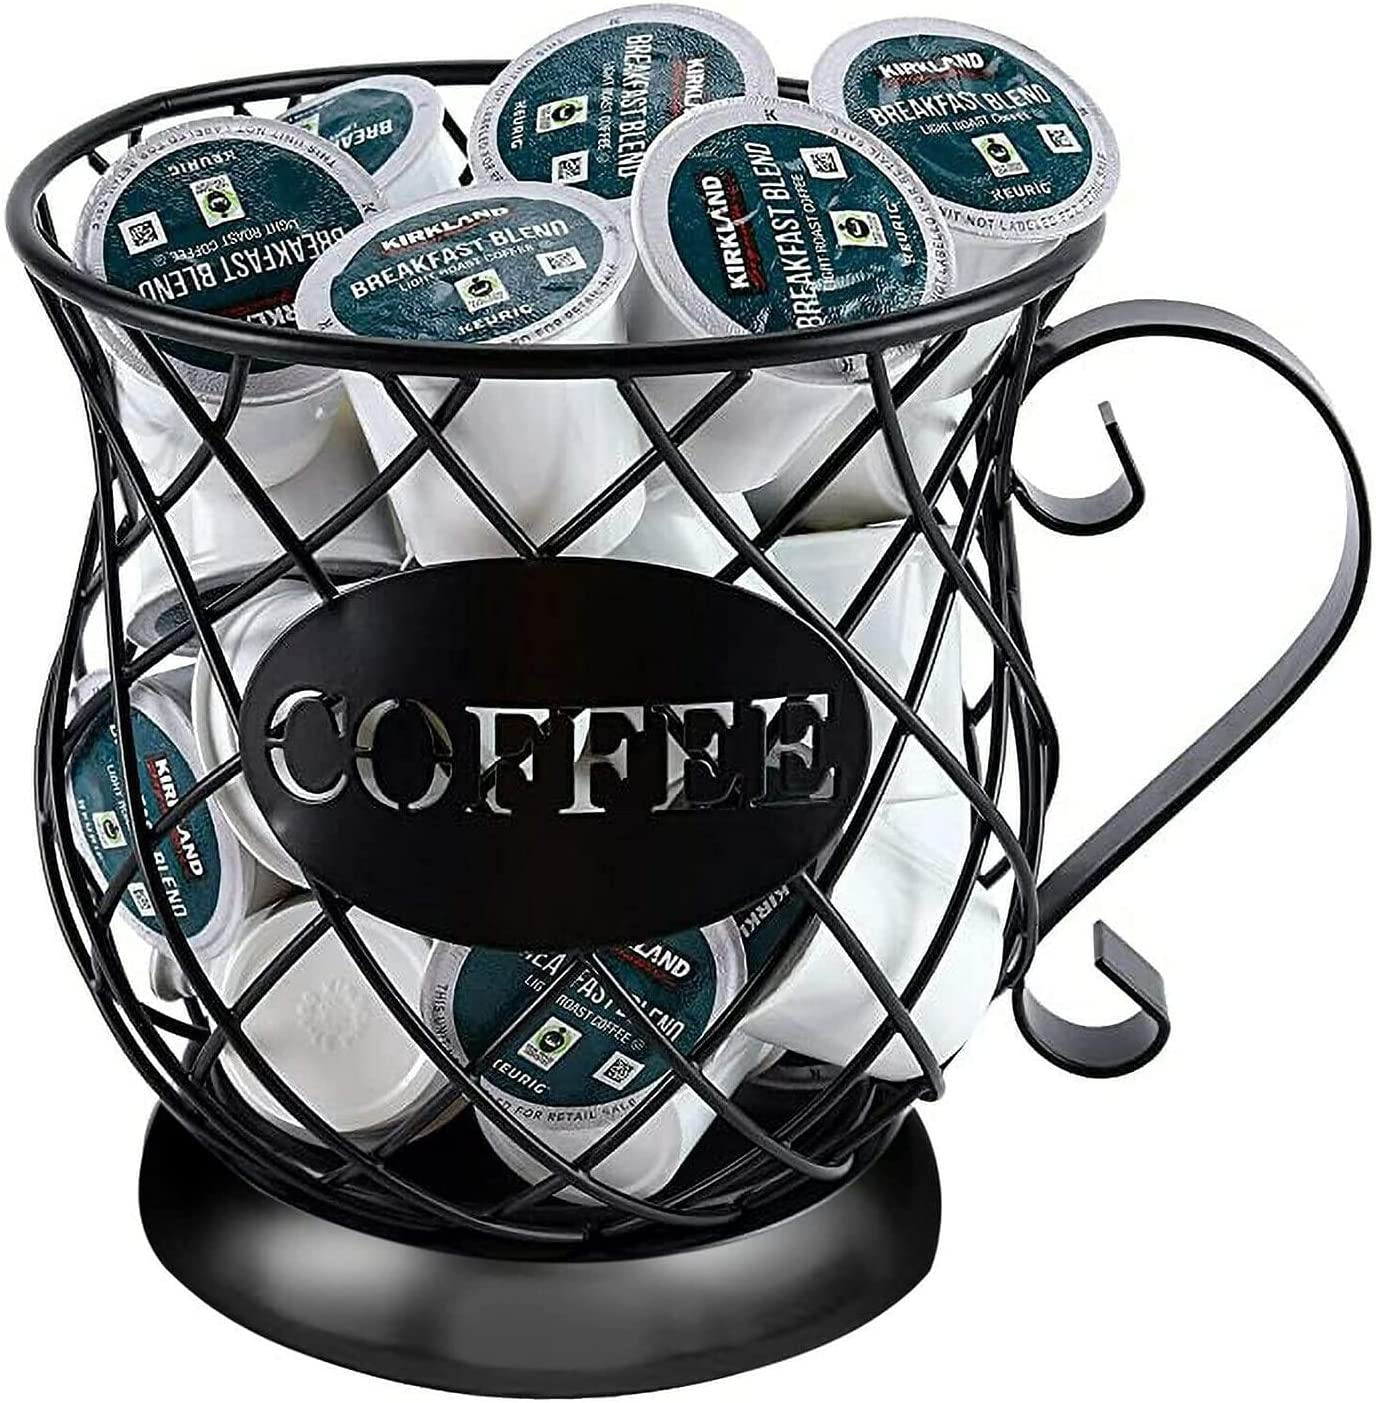 Cup-Shaped Coffee Free Shipping New Pod Holder Storage K Max 43% OFF Rack Cup Basket C